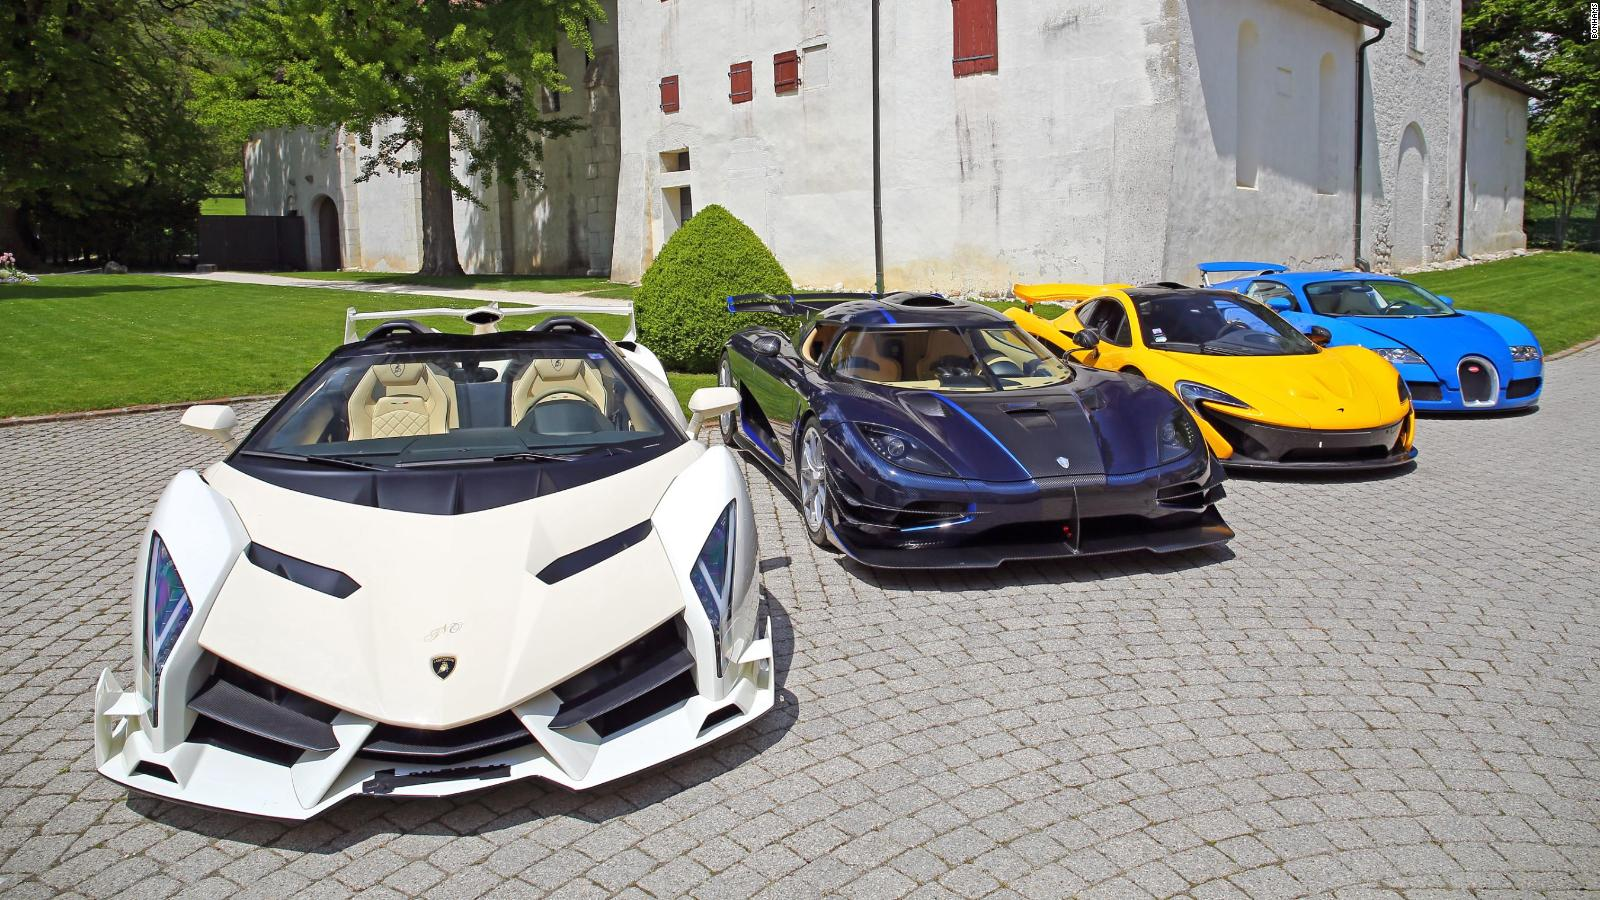 Politicians seized 13 million supercar collection to be